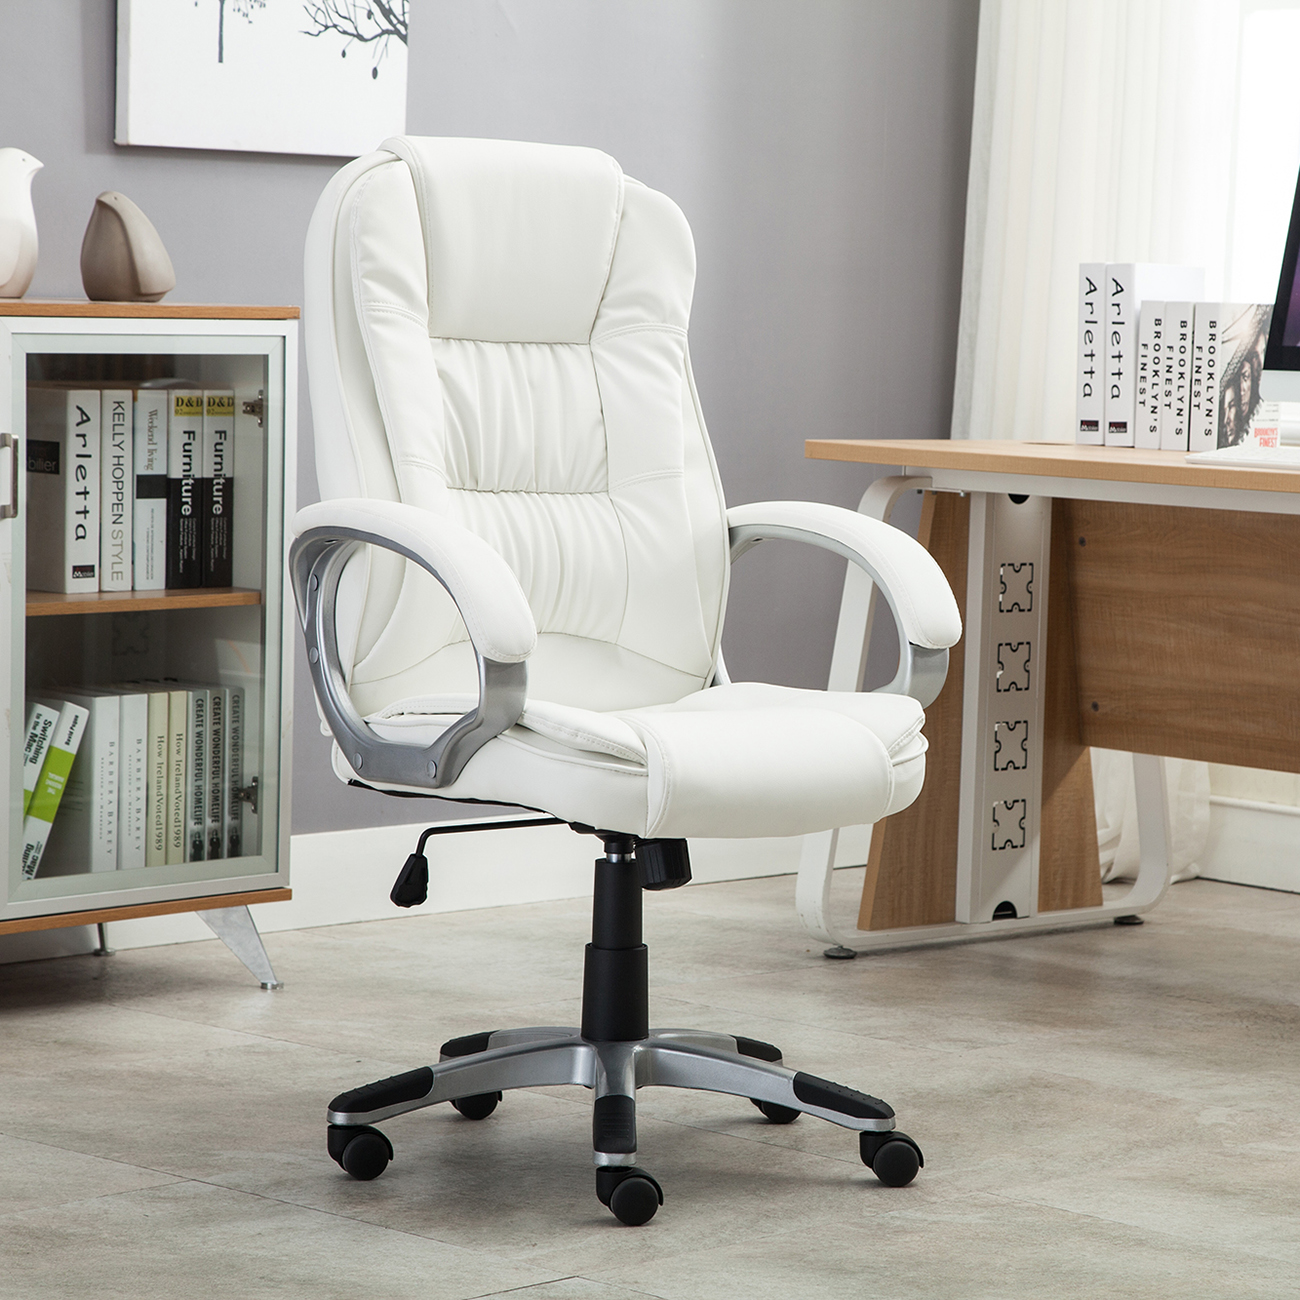 Office Chairs White White Pu Leather High Back Office Chair Executive